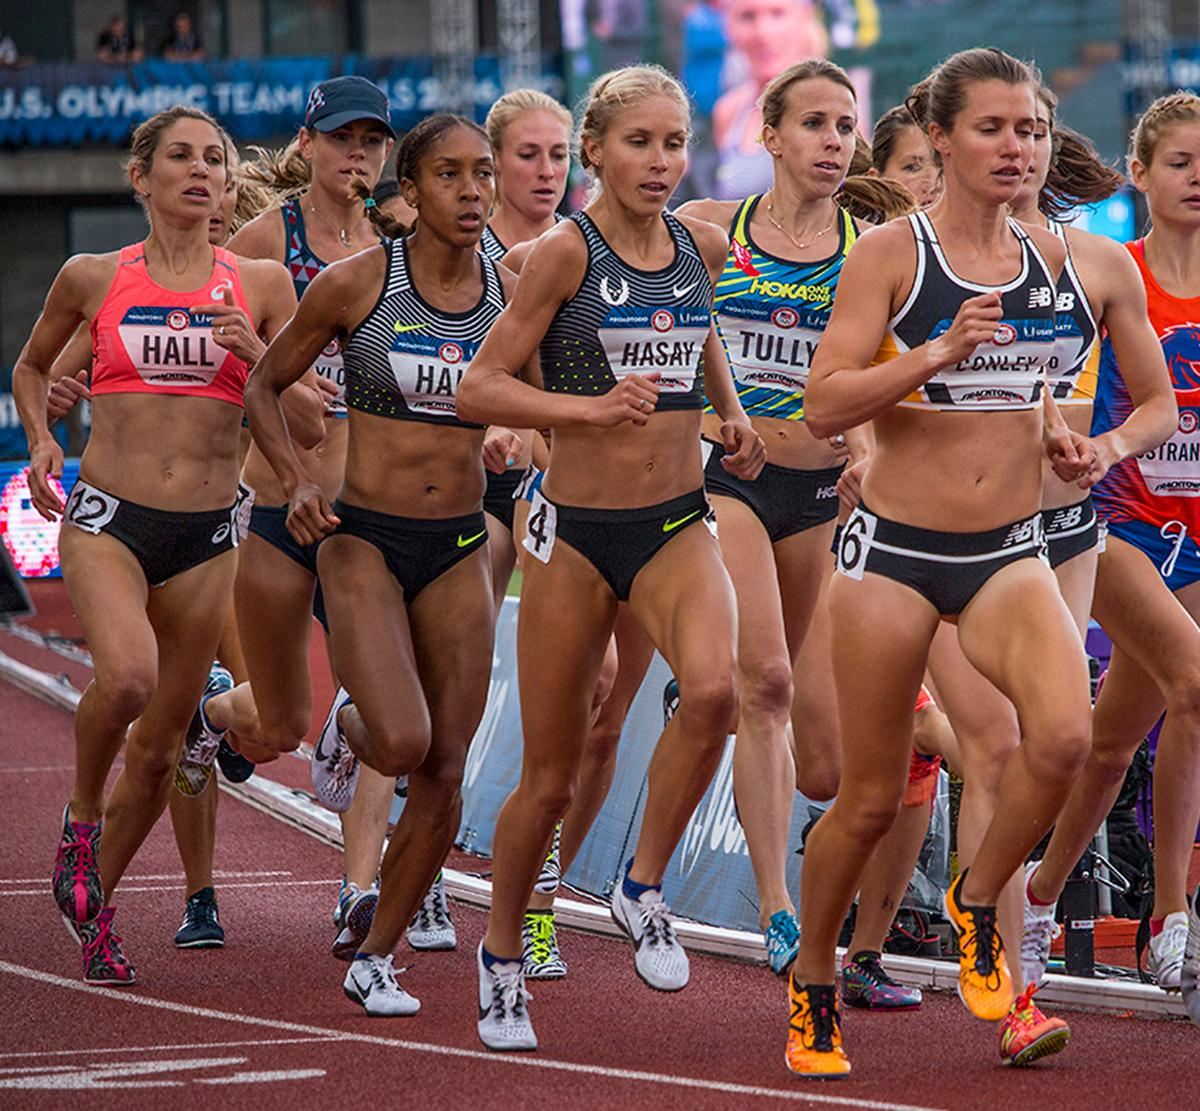 Runner�s compete during the women�s 5,000 meter finals. Day Ten of the U.S. Olympic Trials Track and Field concluded on Sunday at Hayward Field in Eugene, Ore. Competition lasted July 1 - July 10. Photo by Katie Pietzold